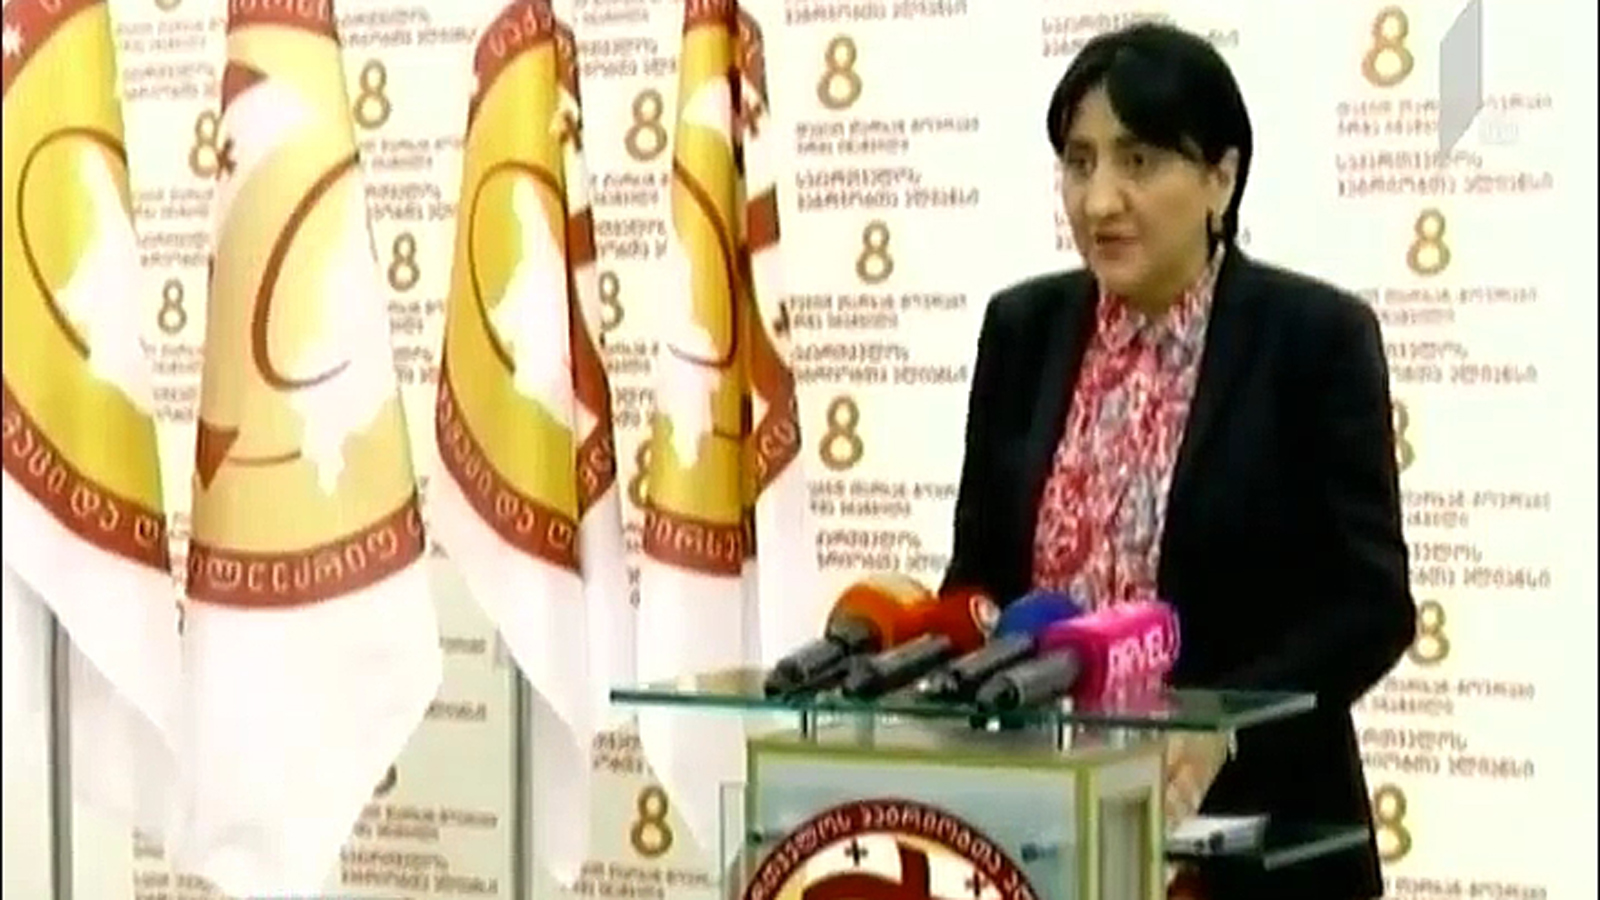 We will not admit elections forging – Irma Inashvili